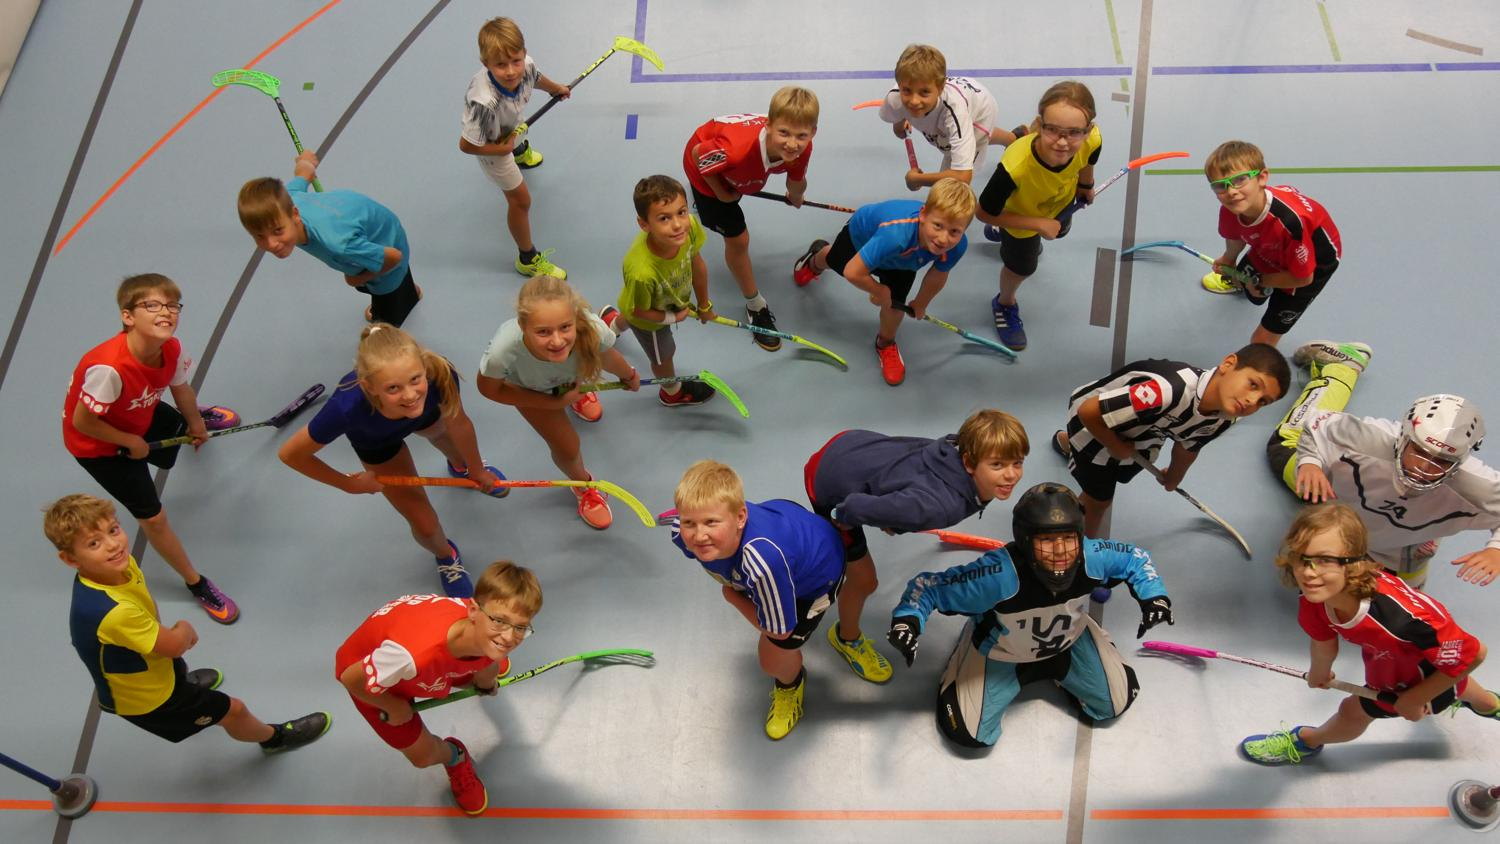 Junioren-Trainingslager: Intensive Trainings und tolle Stimmung